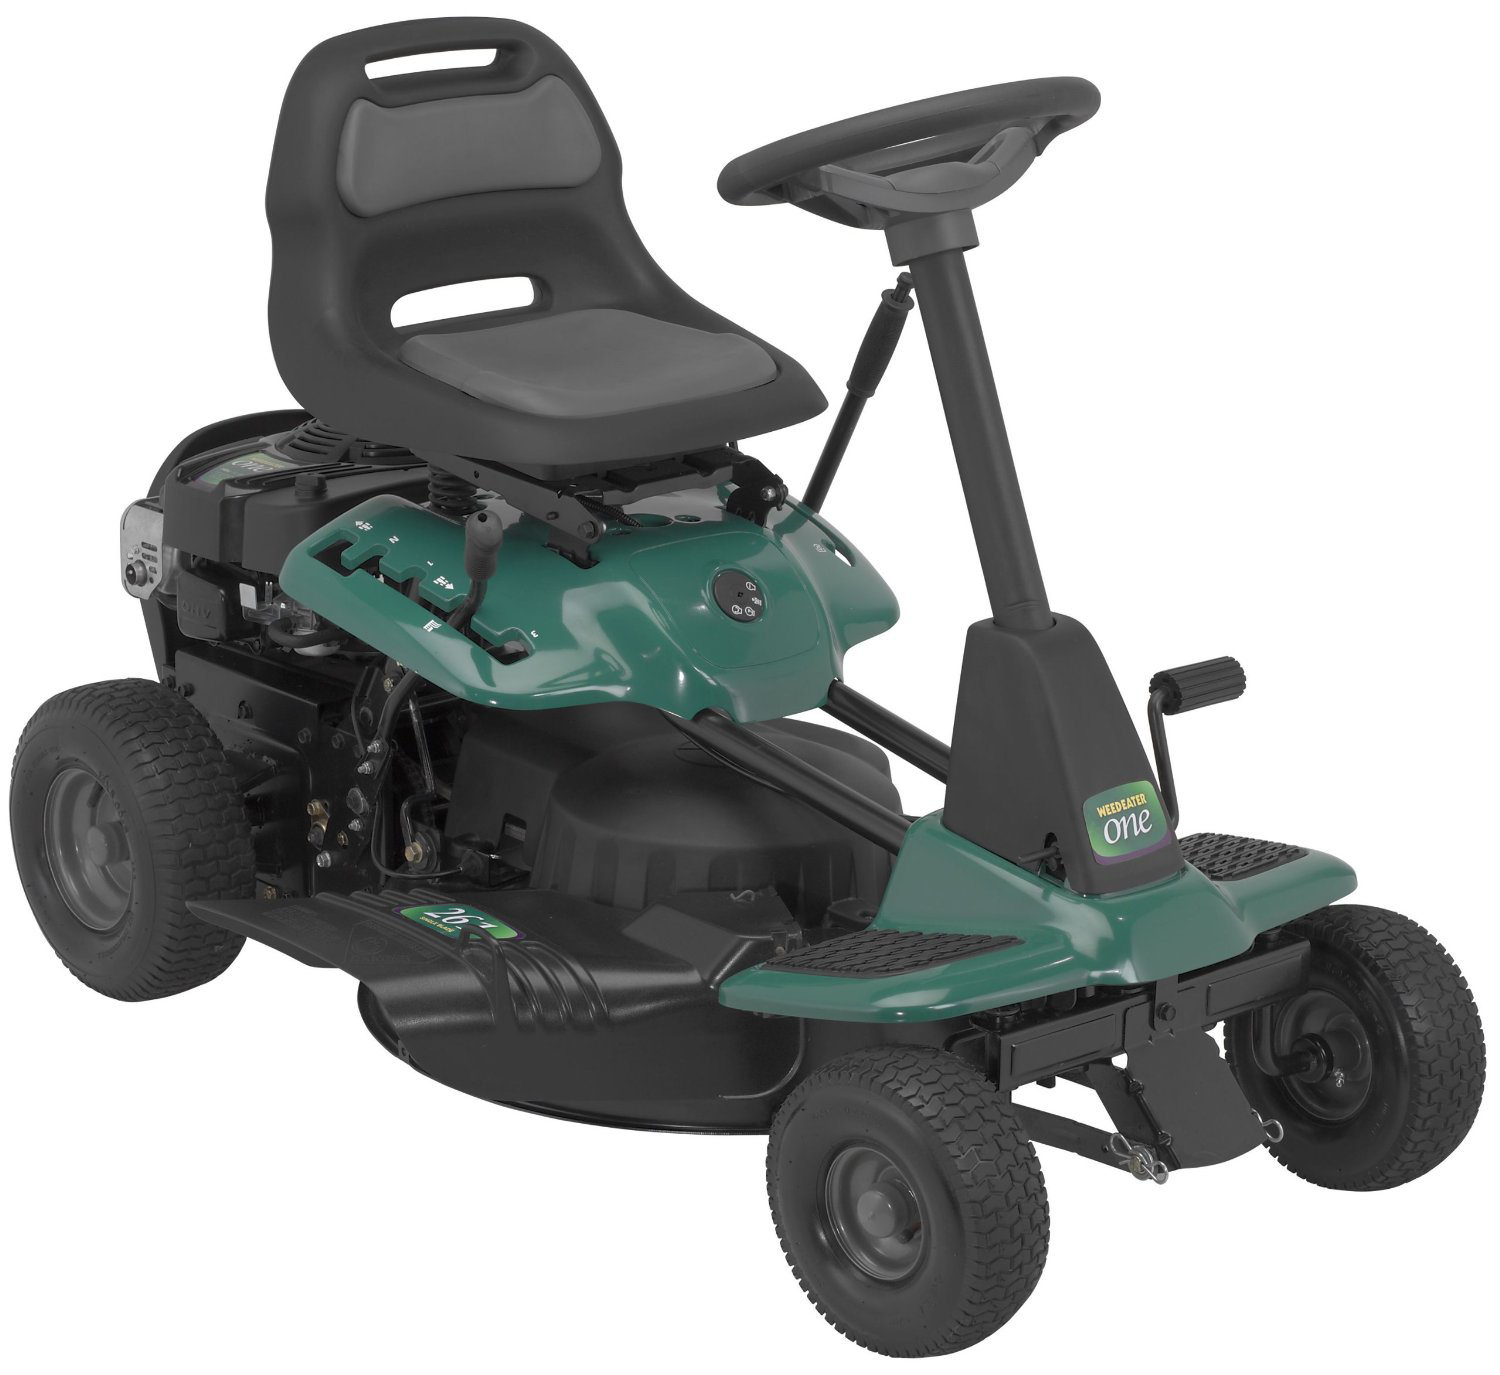 Riding Mower Reviews We Review 8 of the Best Ride on Mowers